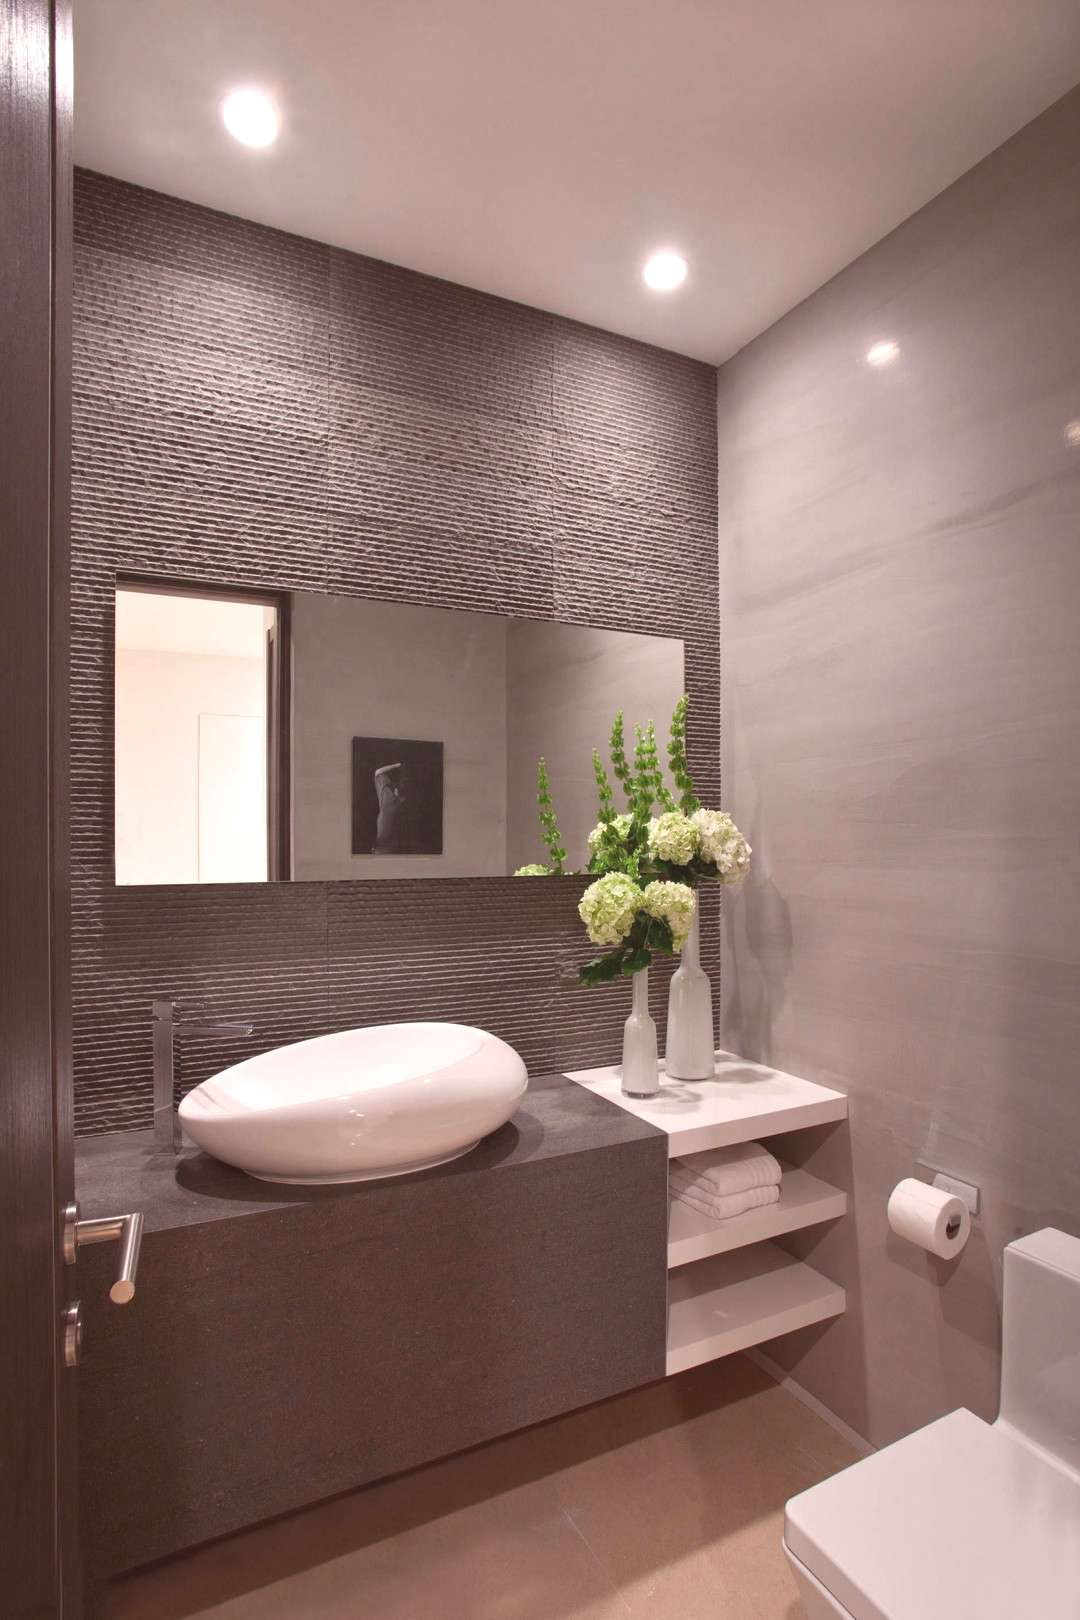 15 Awesome Contemporary Bathroom Design Ideas You Must Have (Recommended)